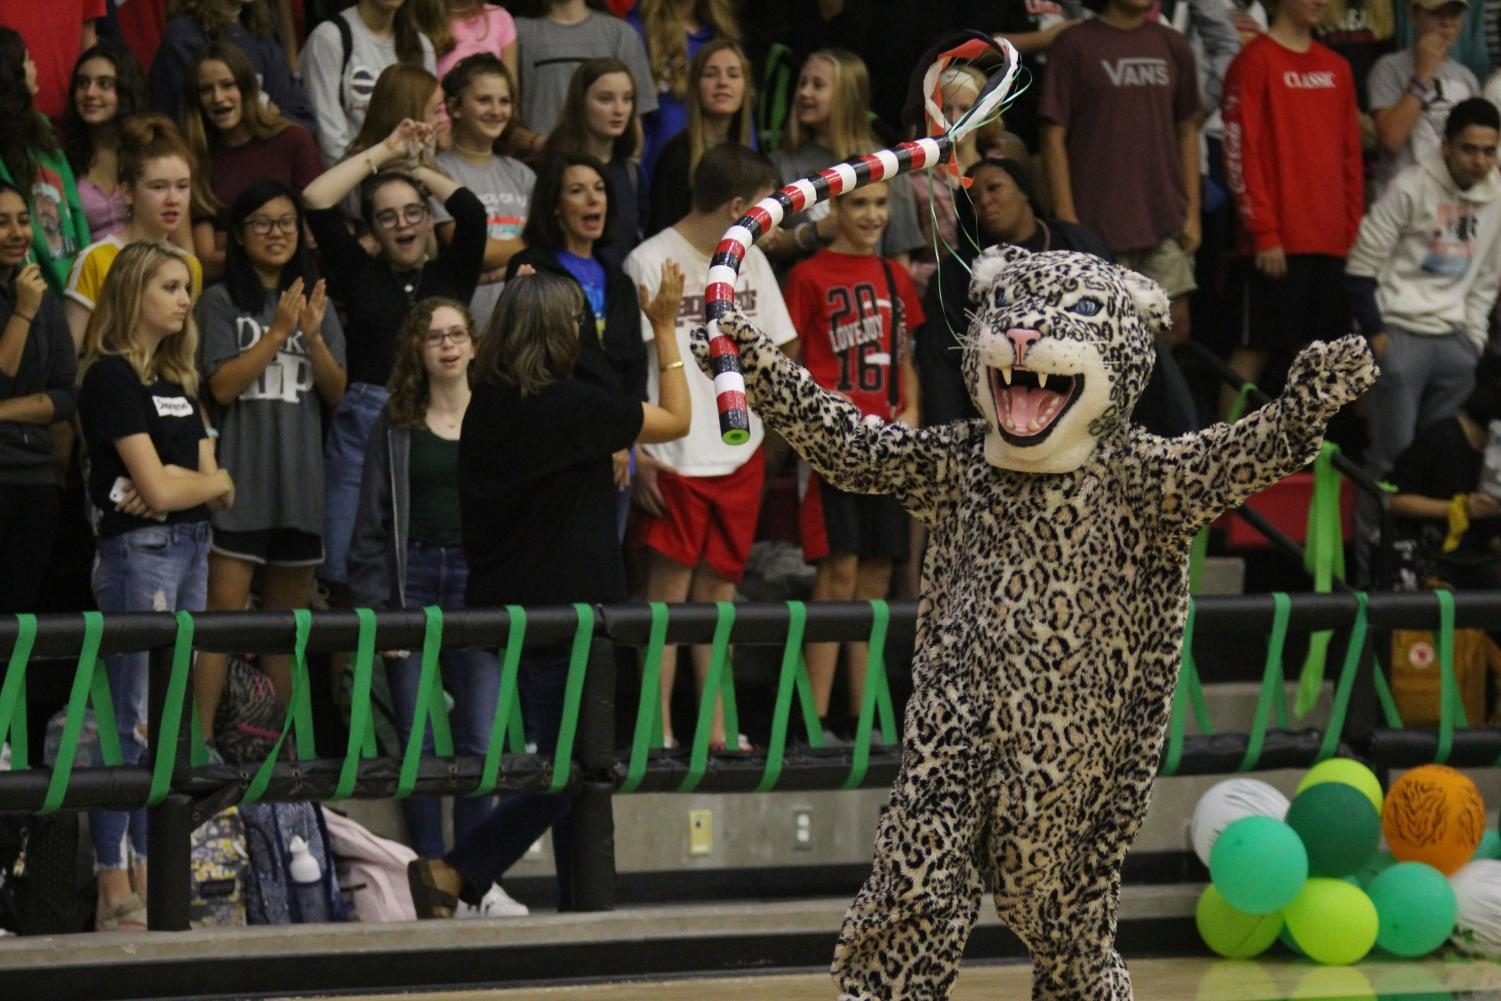 The+mascot+Leo+the+Leopard+runs+around+the+gym+during+the+school%E2%80%99s+first+Leopard+Battle+Cry.+Leo+later+threw+the+spirit+stick+into+the+crowd+of+seniors+as+they+won+the+title+for+most+spirited.+